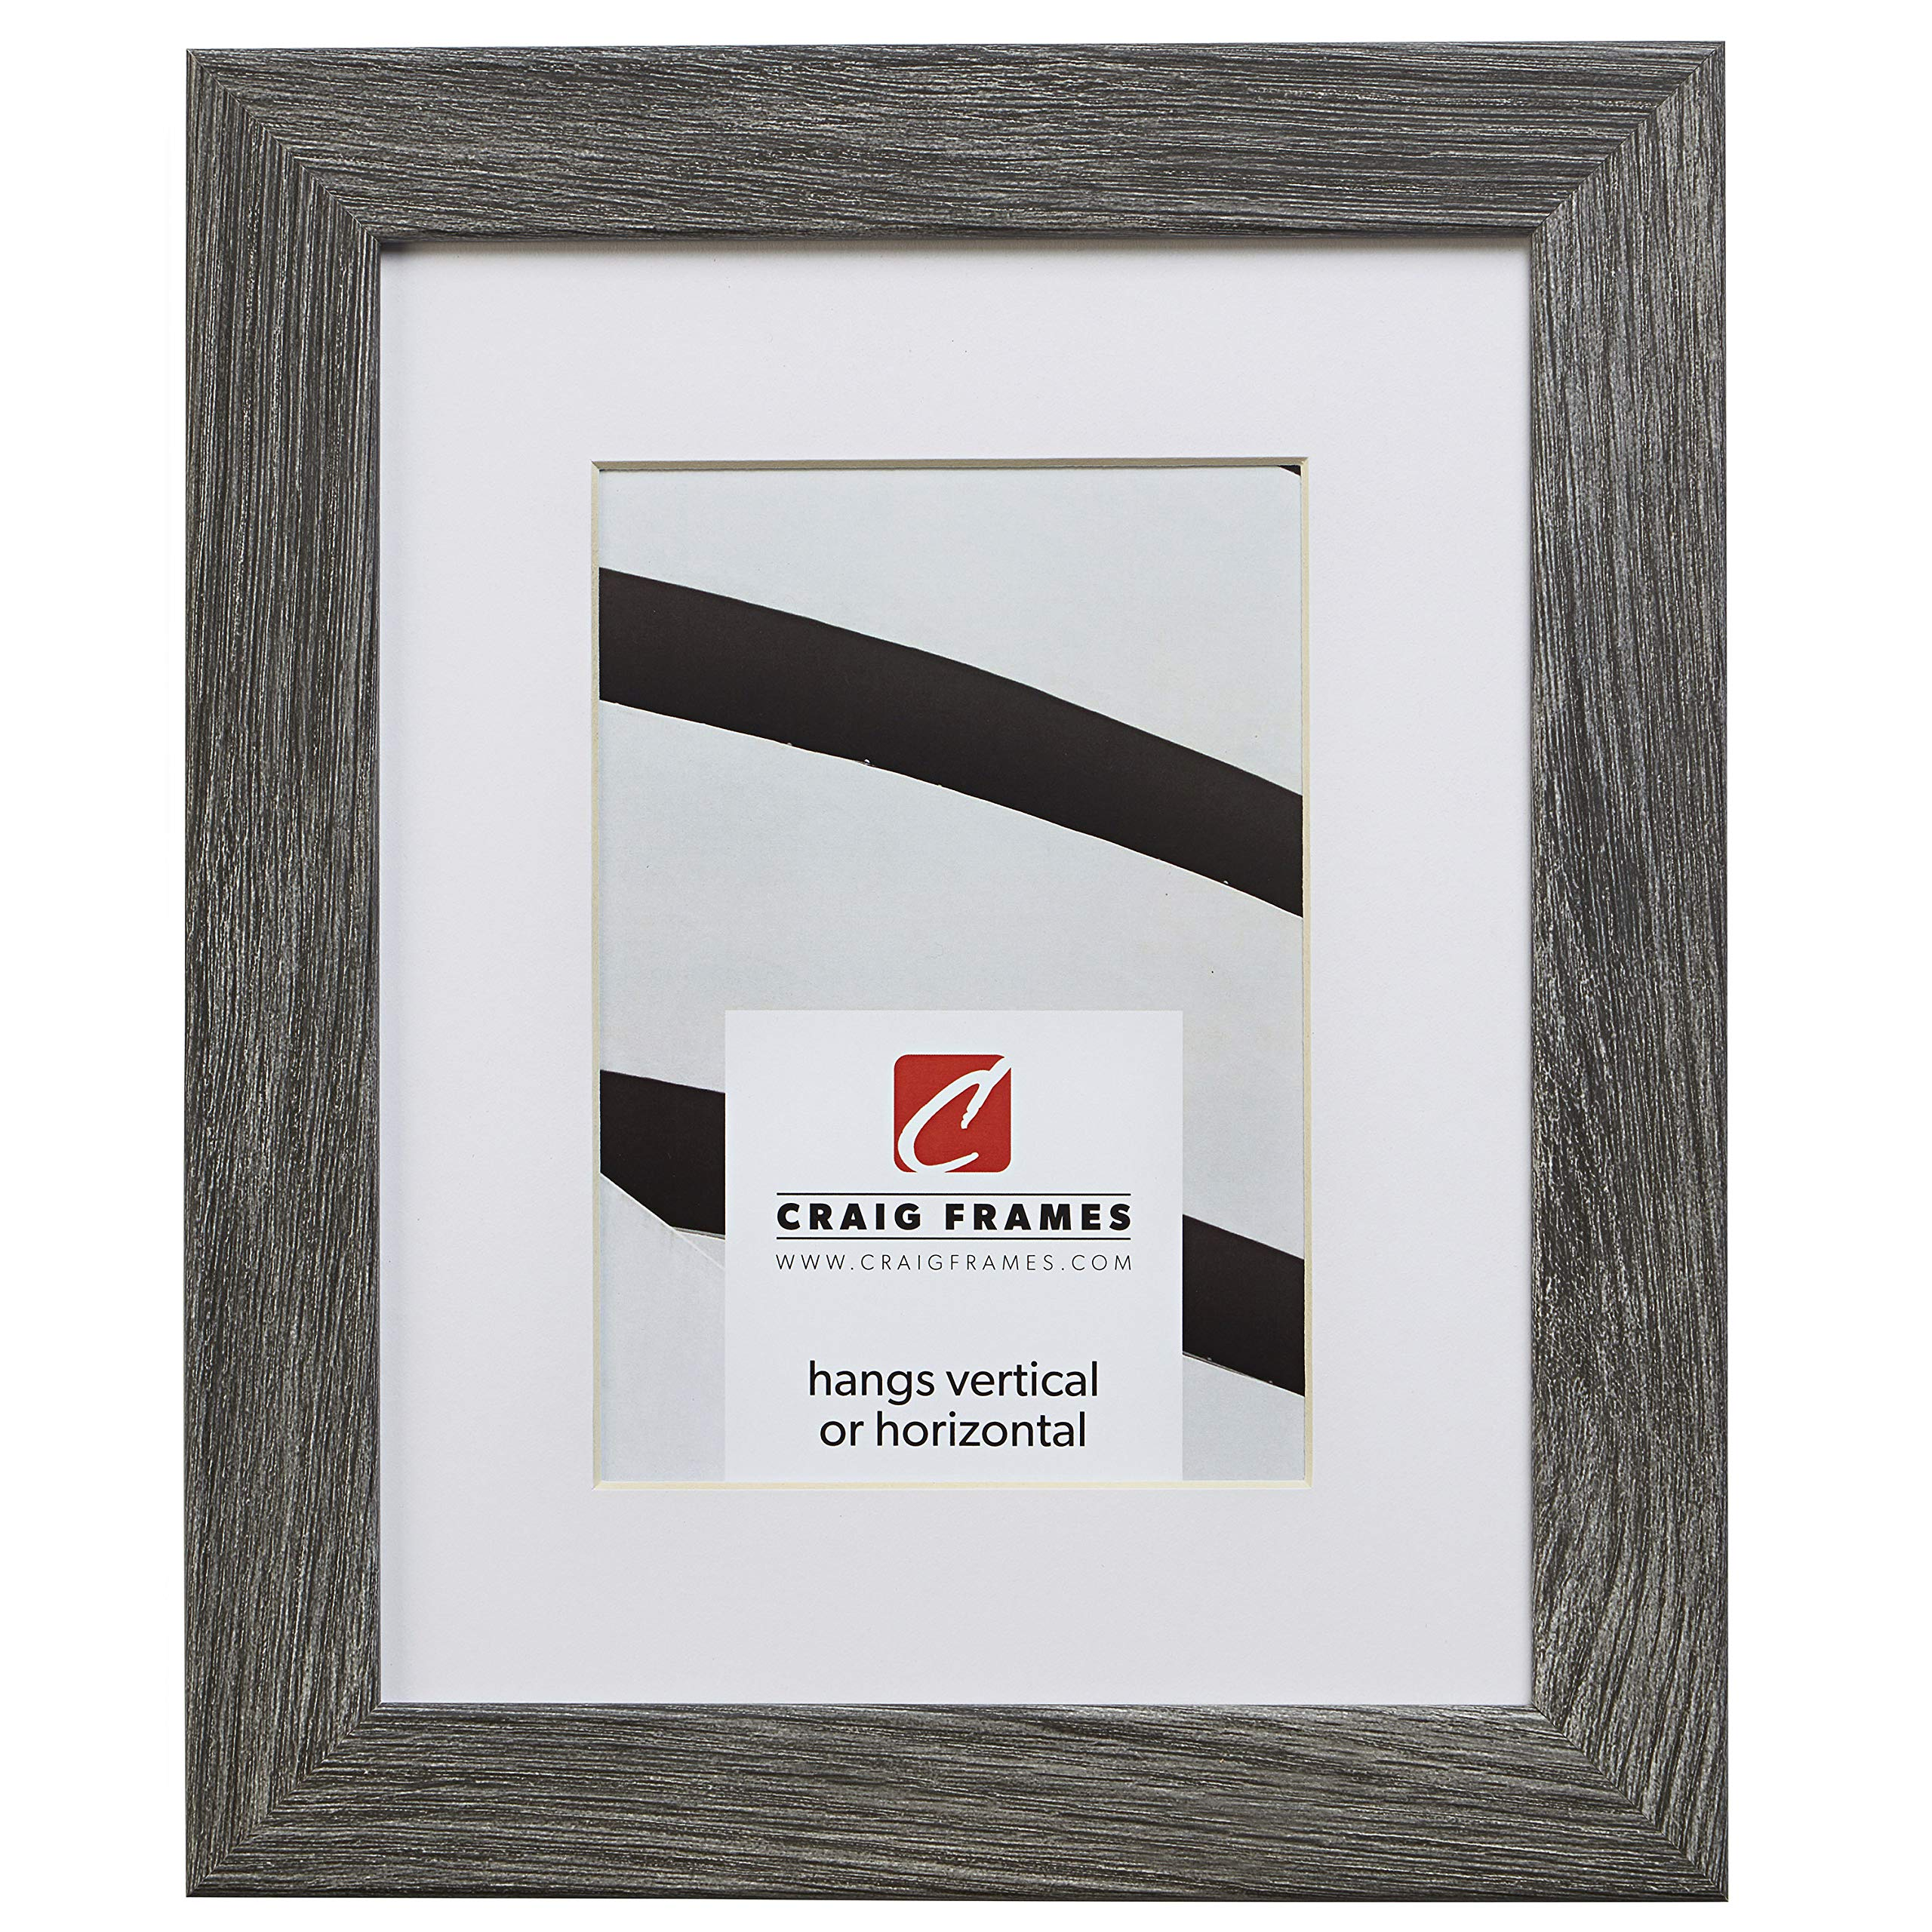 Craig Frames 26030 16 x 20 Inch Gray Barnwood Picture Frame Matted to Display a 11 x 14 Inch Photo by Craig Frames